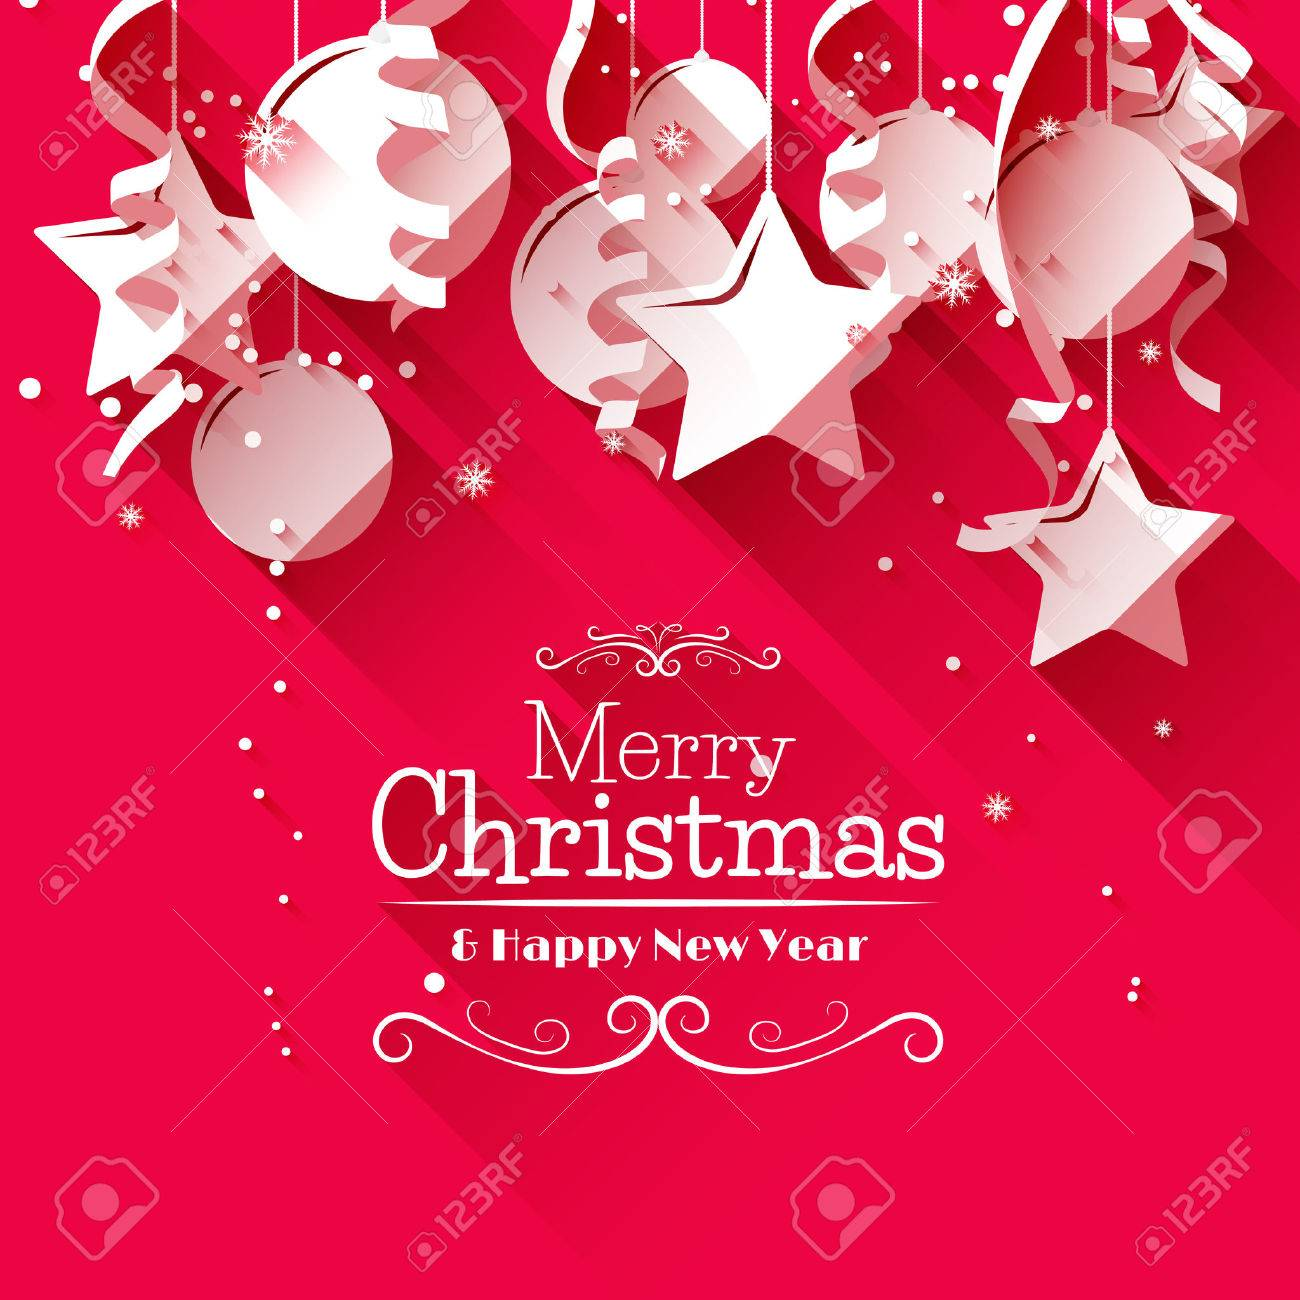 Greeting stock photos royalty free greeting images modern christmas greeting card with paper decorations on red background flat design style m4hsunfo